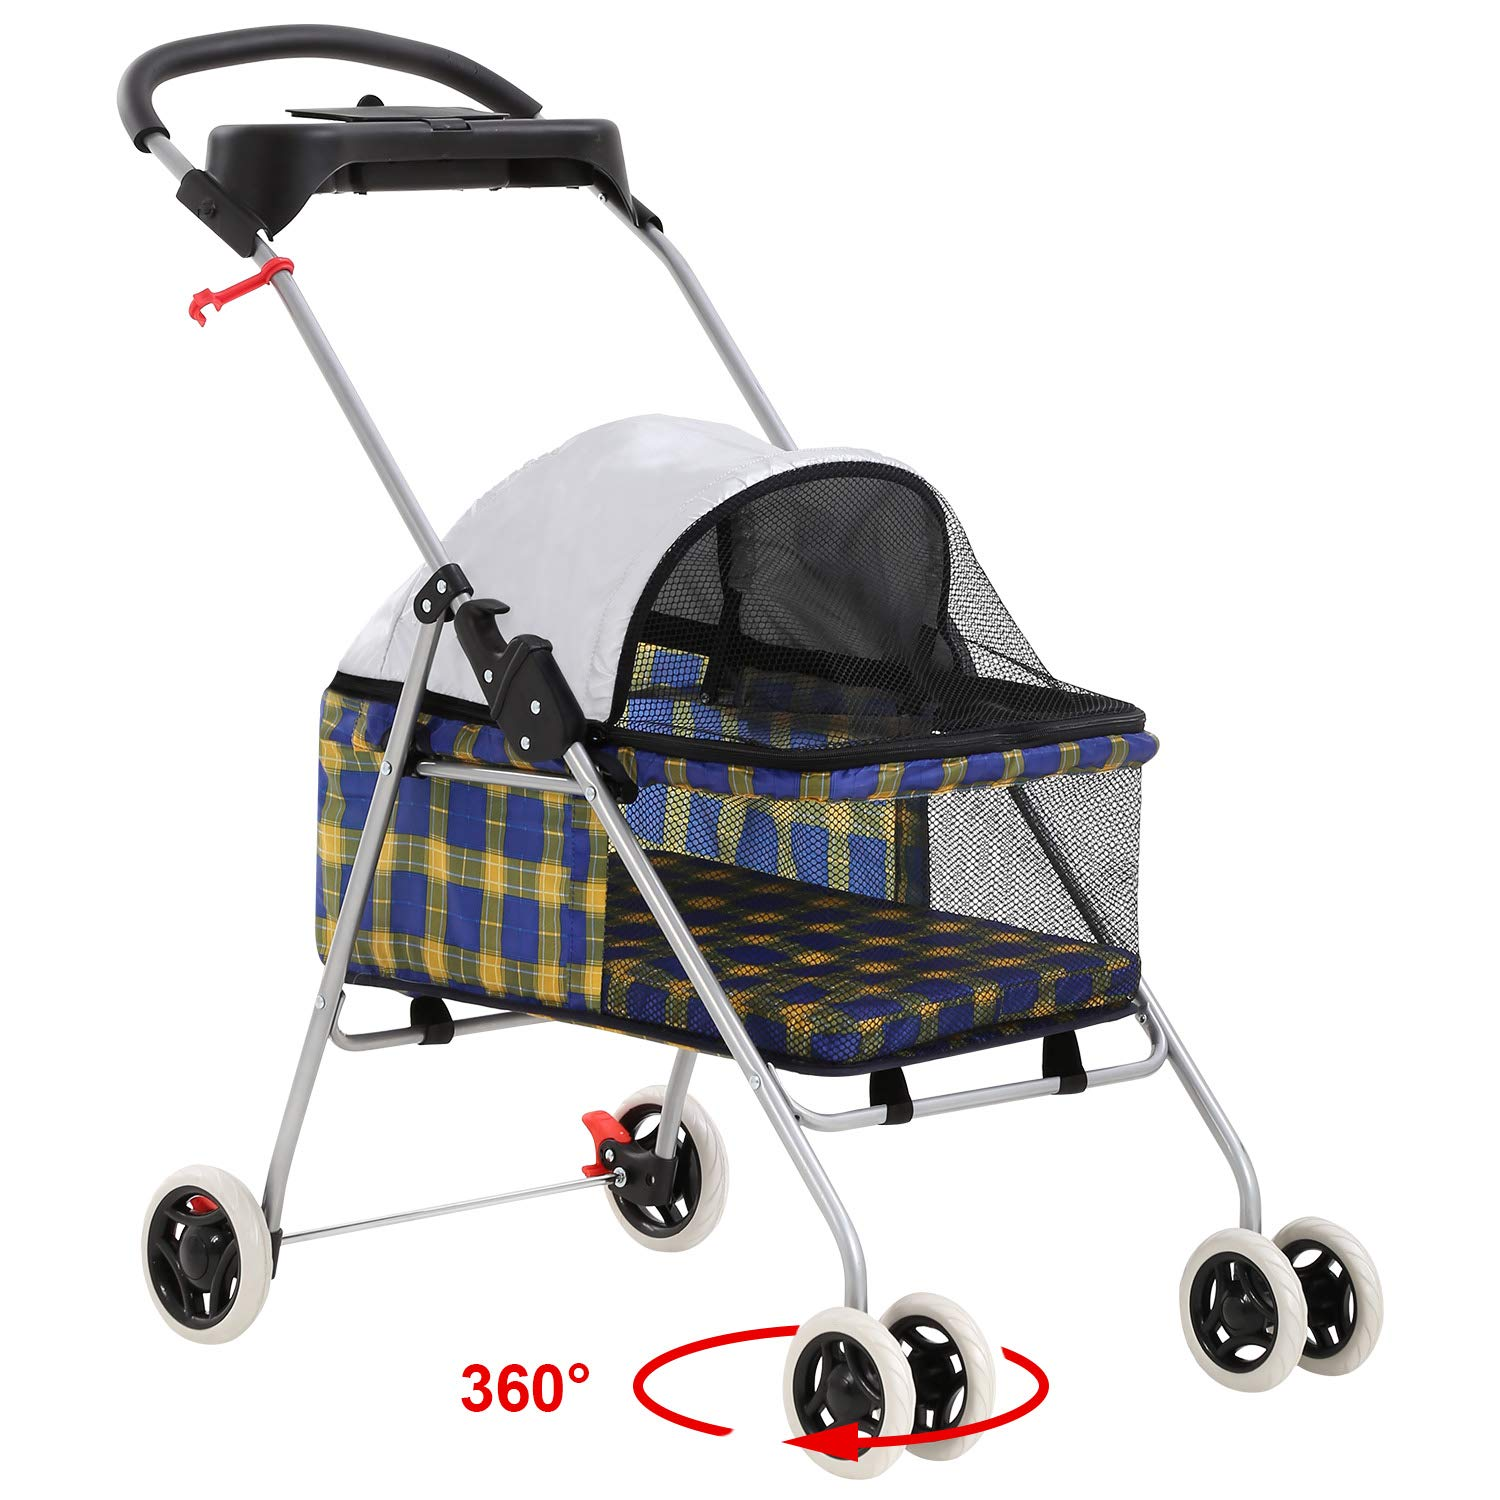 BestPet New Yellow Plaid Posh Pet Stroller Dogs Cats w/Cup Holder by BestPet